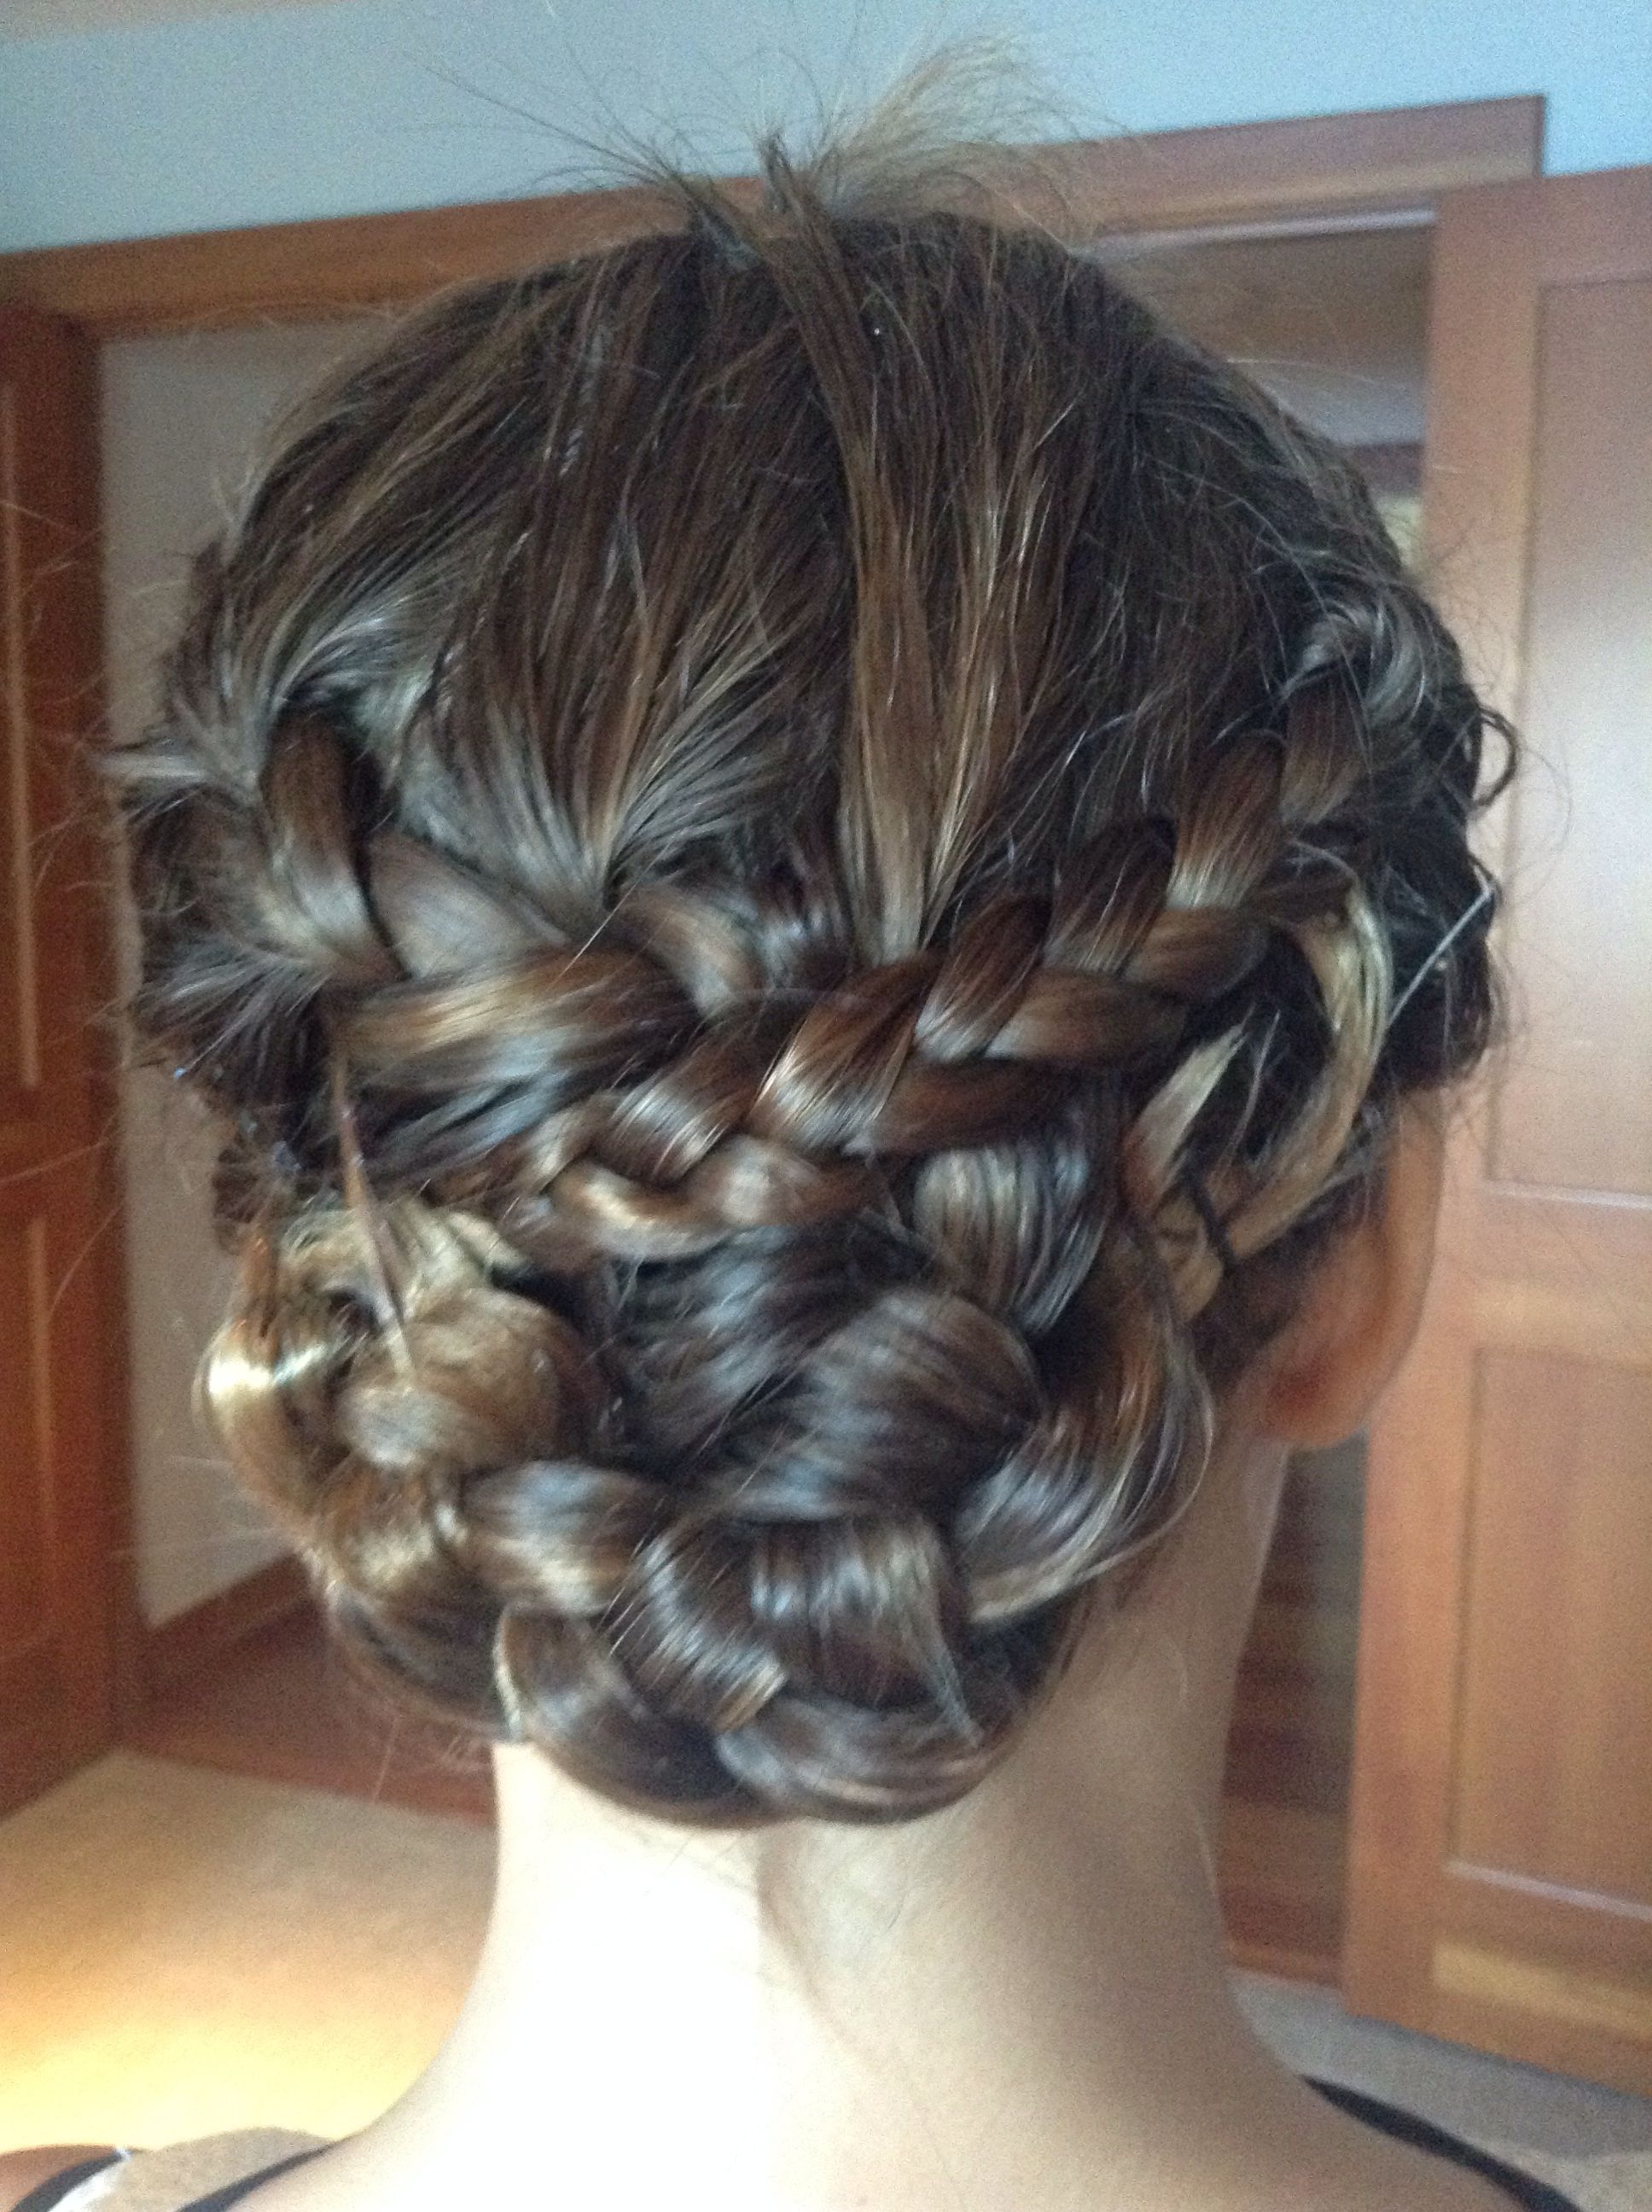 Bat Mitzvah Hairstyles Gorgeous My Bat Mitzvah Hair  ~~Häìr~~  Pinterest  Bat Mitzvah